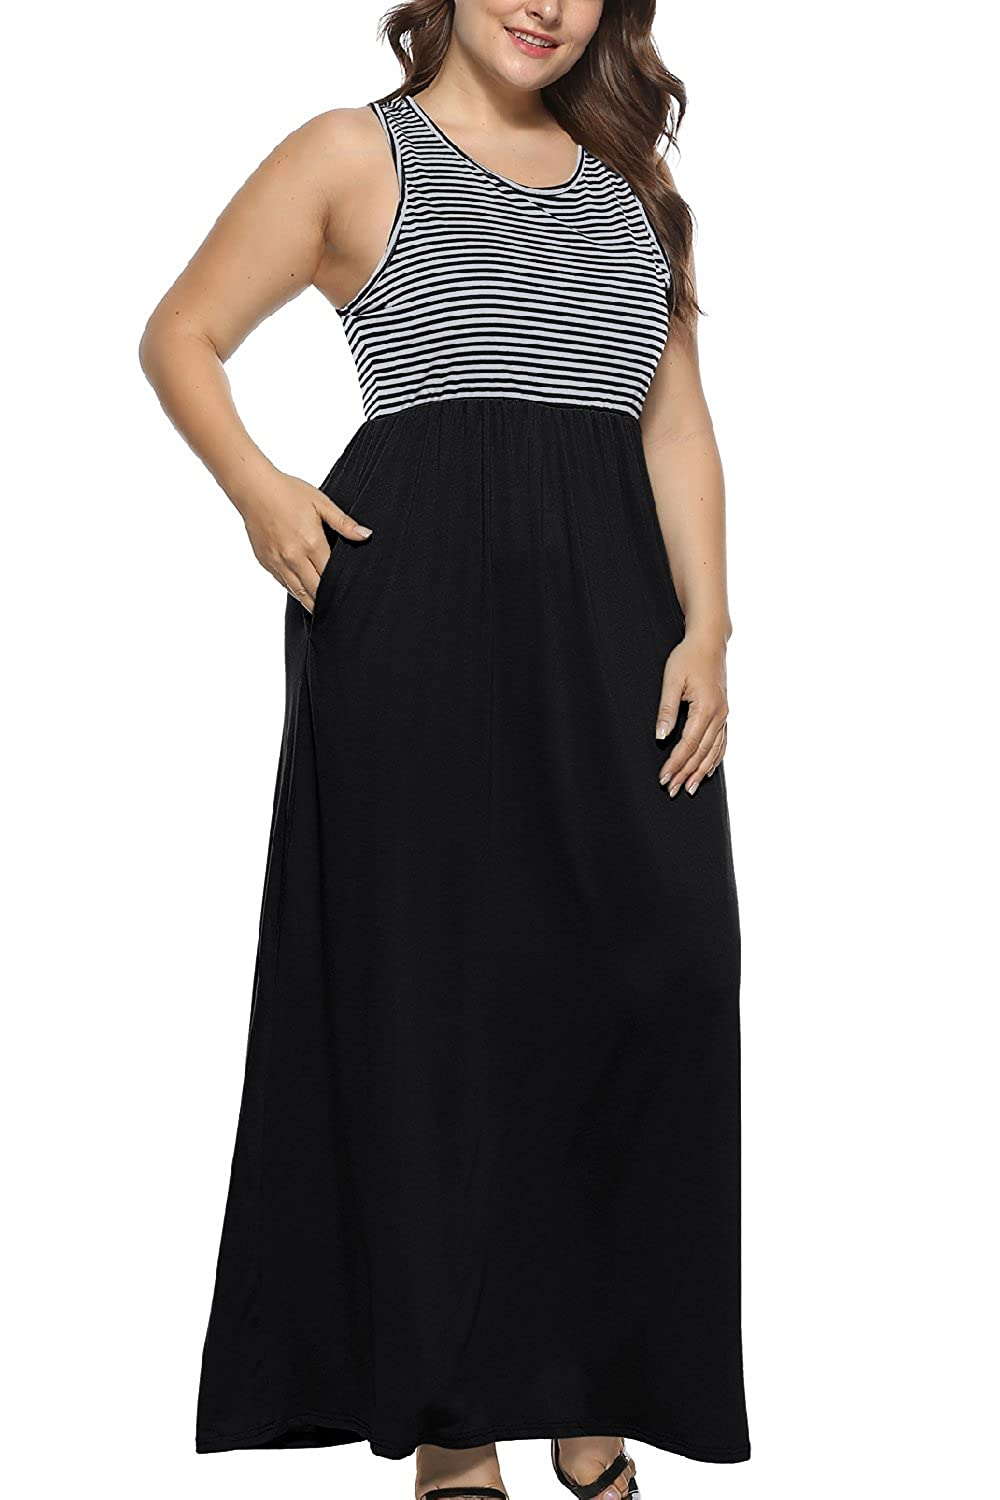 Yacun Women Plus Size Maxi Tank Dress Sleeveless Stripes Sundress at ...